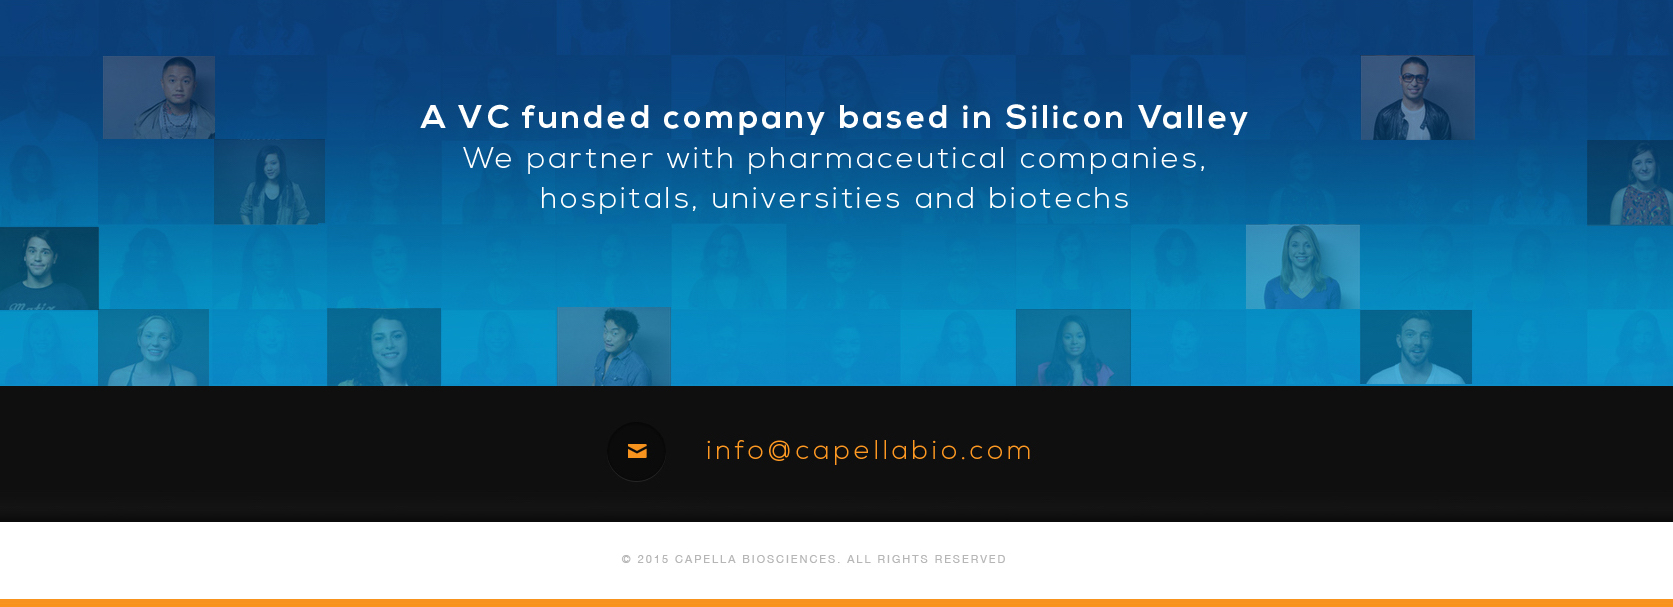 A VC funded computational pharmaceutical company based in Silicon Valley